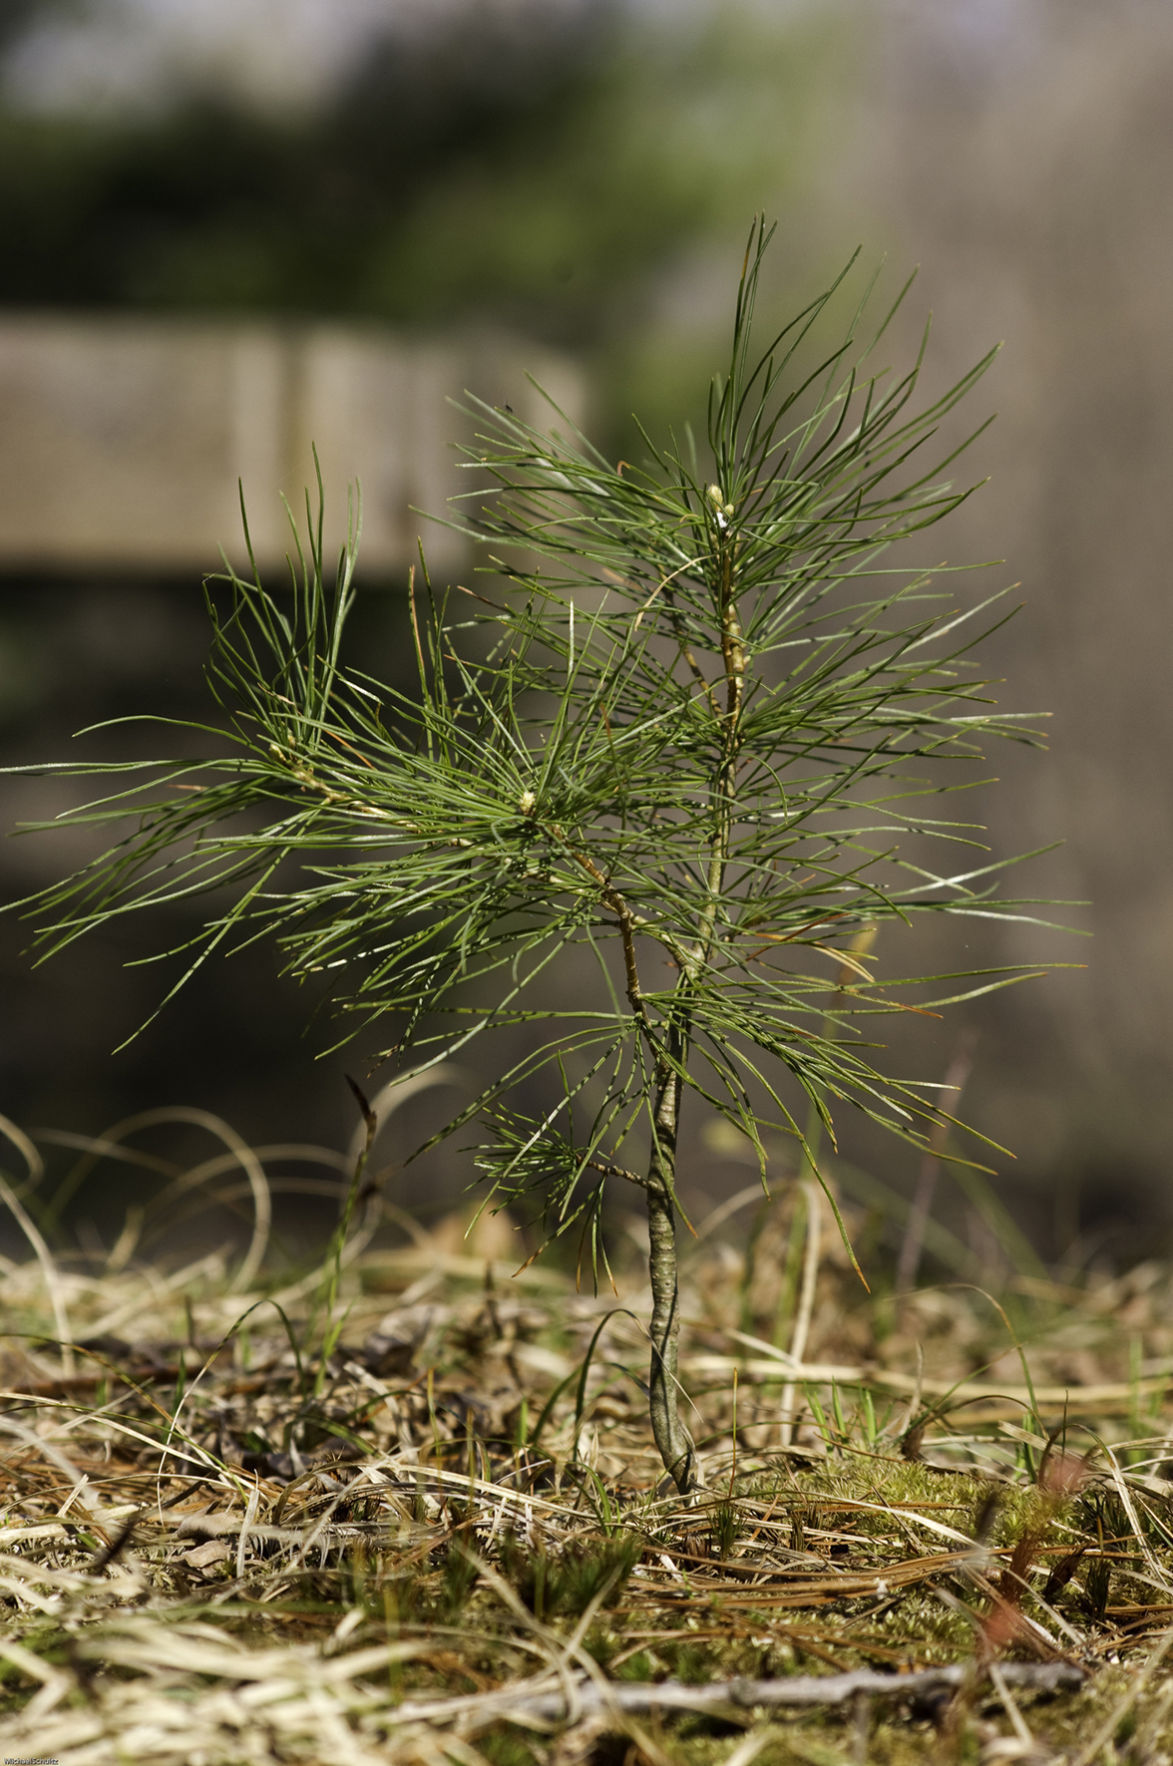 Gardening Q&A: Pine seedlings are pesky to remove | Lawn & Garden ...